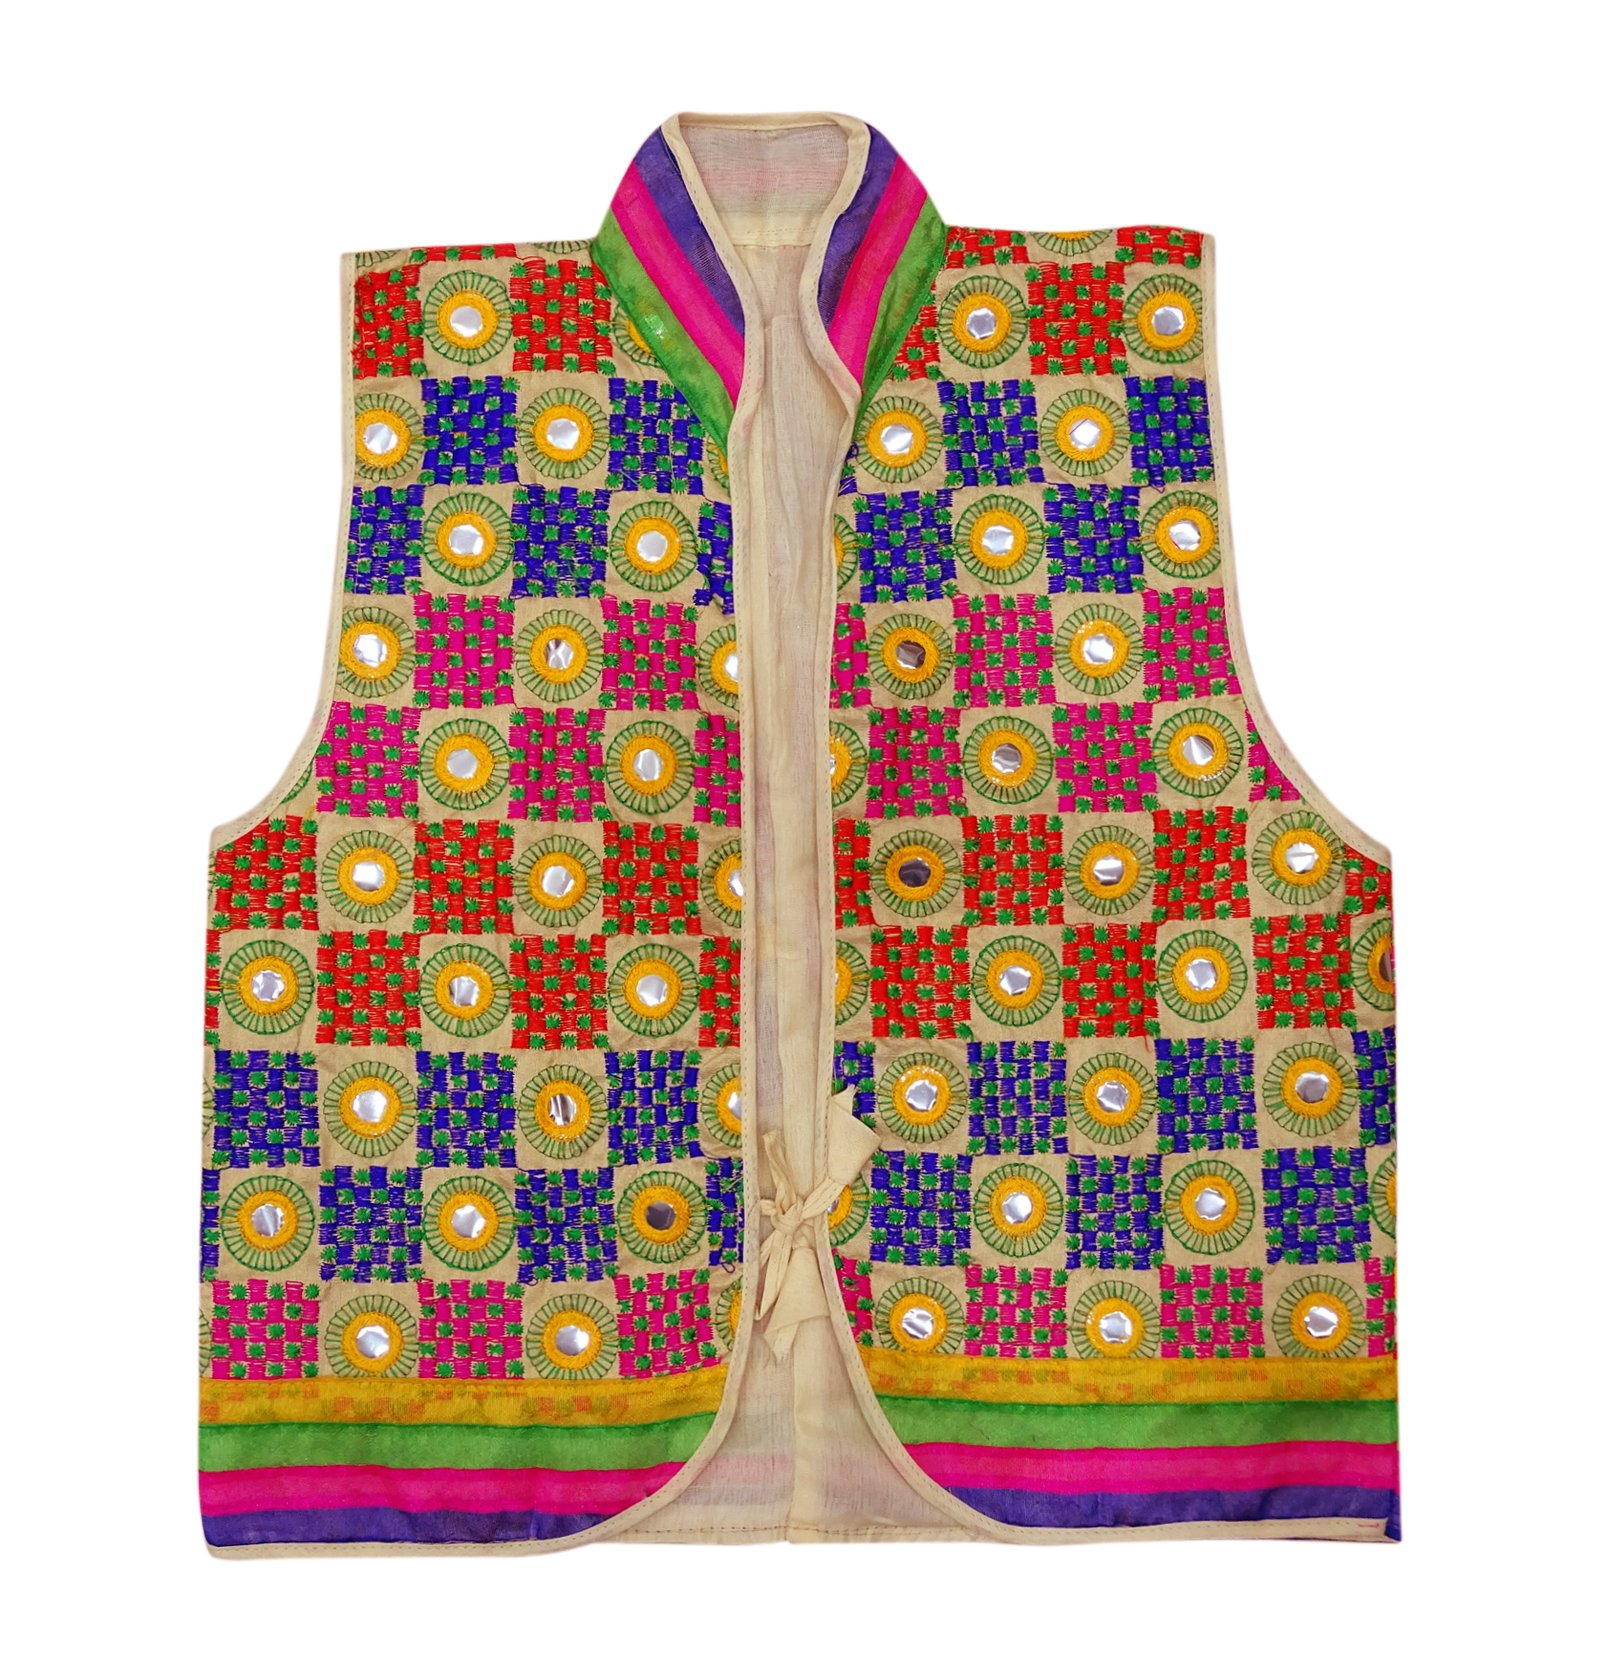 Peegli Kutch Embroidered Banjara Jacket Traditional Shrug Rajasthani Koti by Peegli